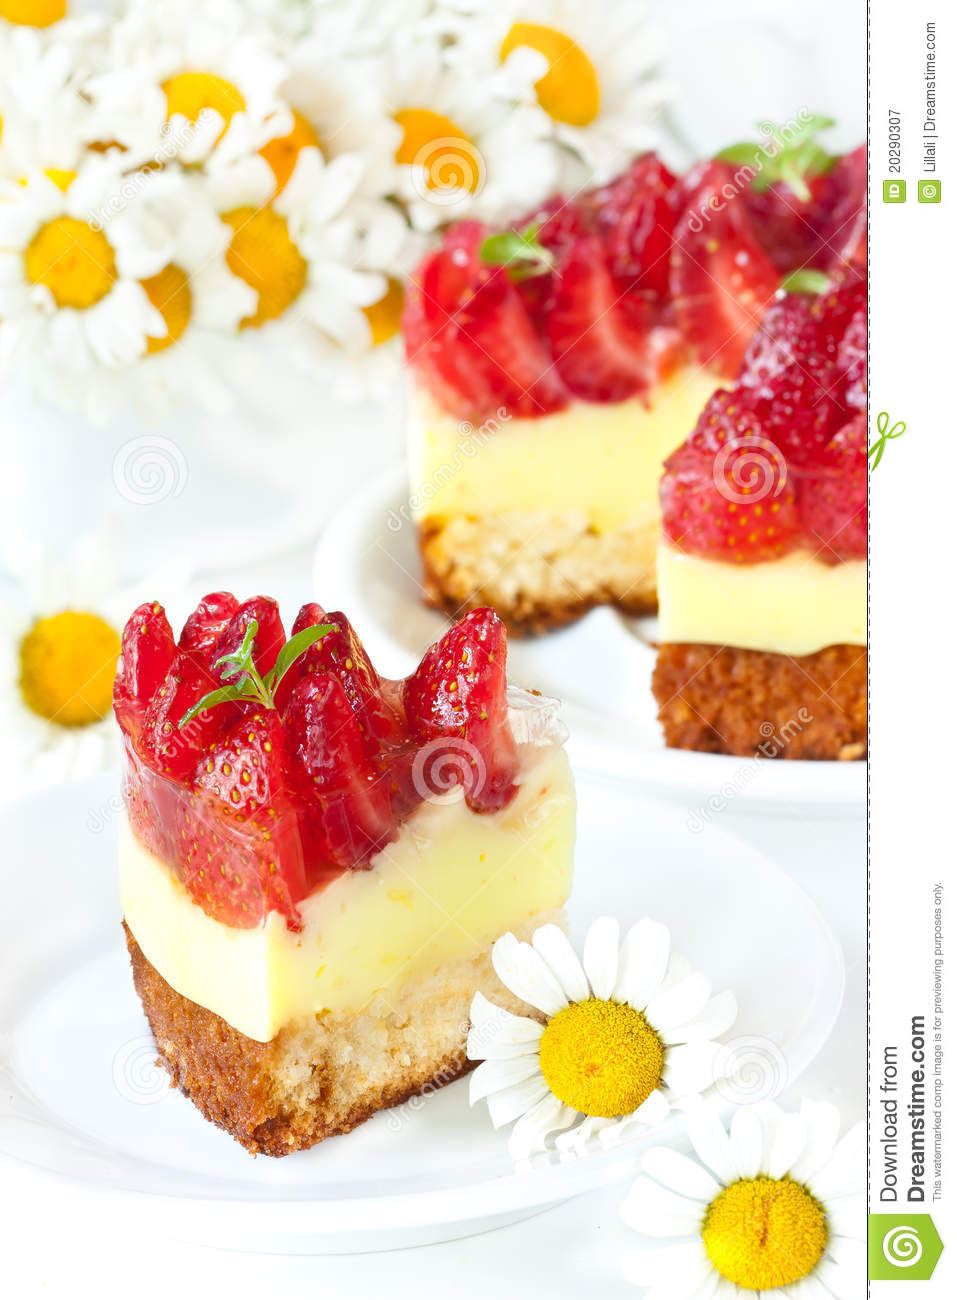 Strawberry Cake Images Free Download : Strawberry Cake. Royalty Free Stock Photography - Image ...